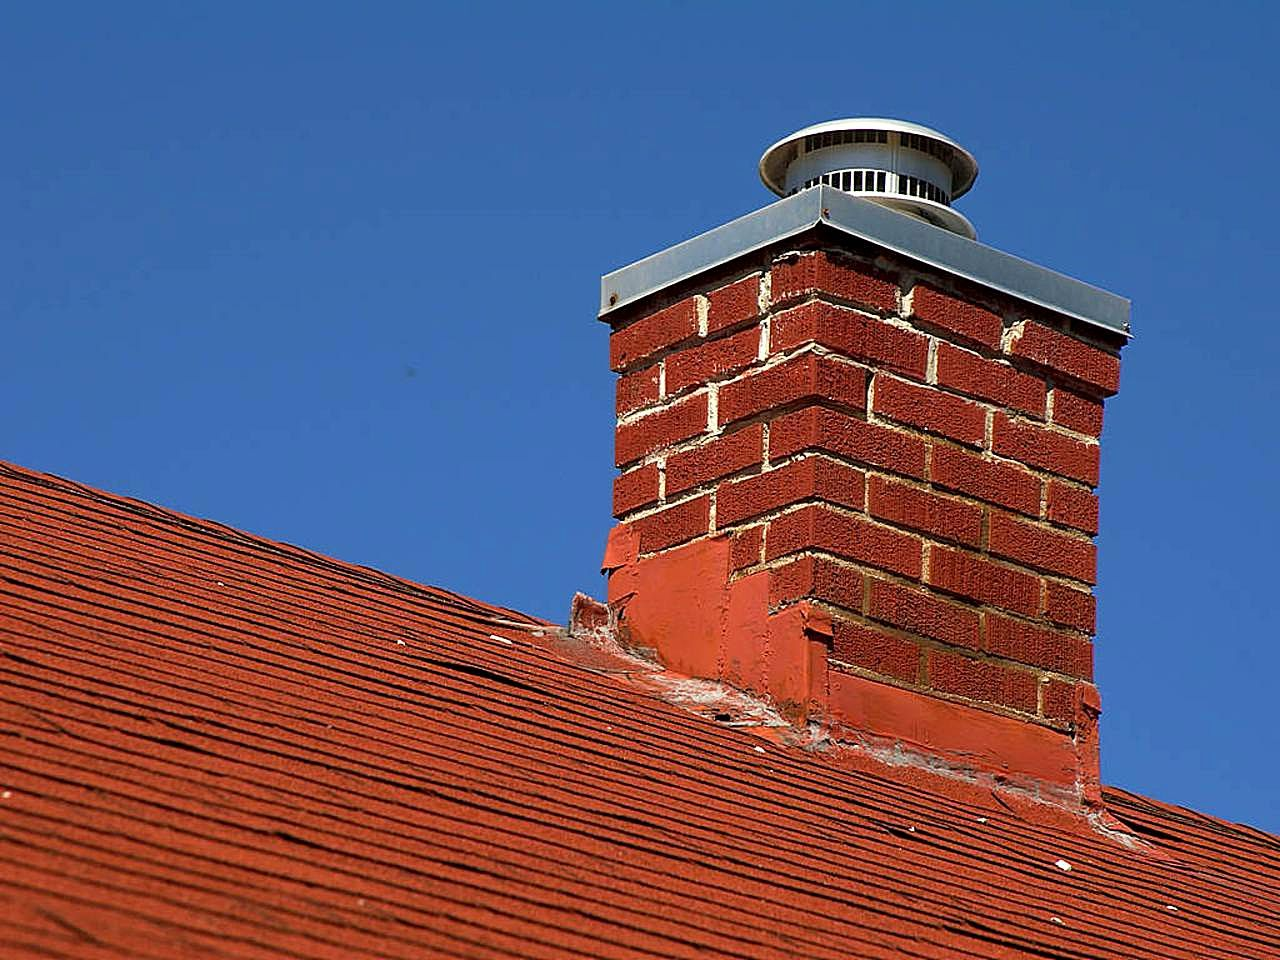 An example of a bricked chimney